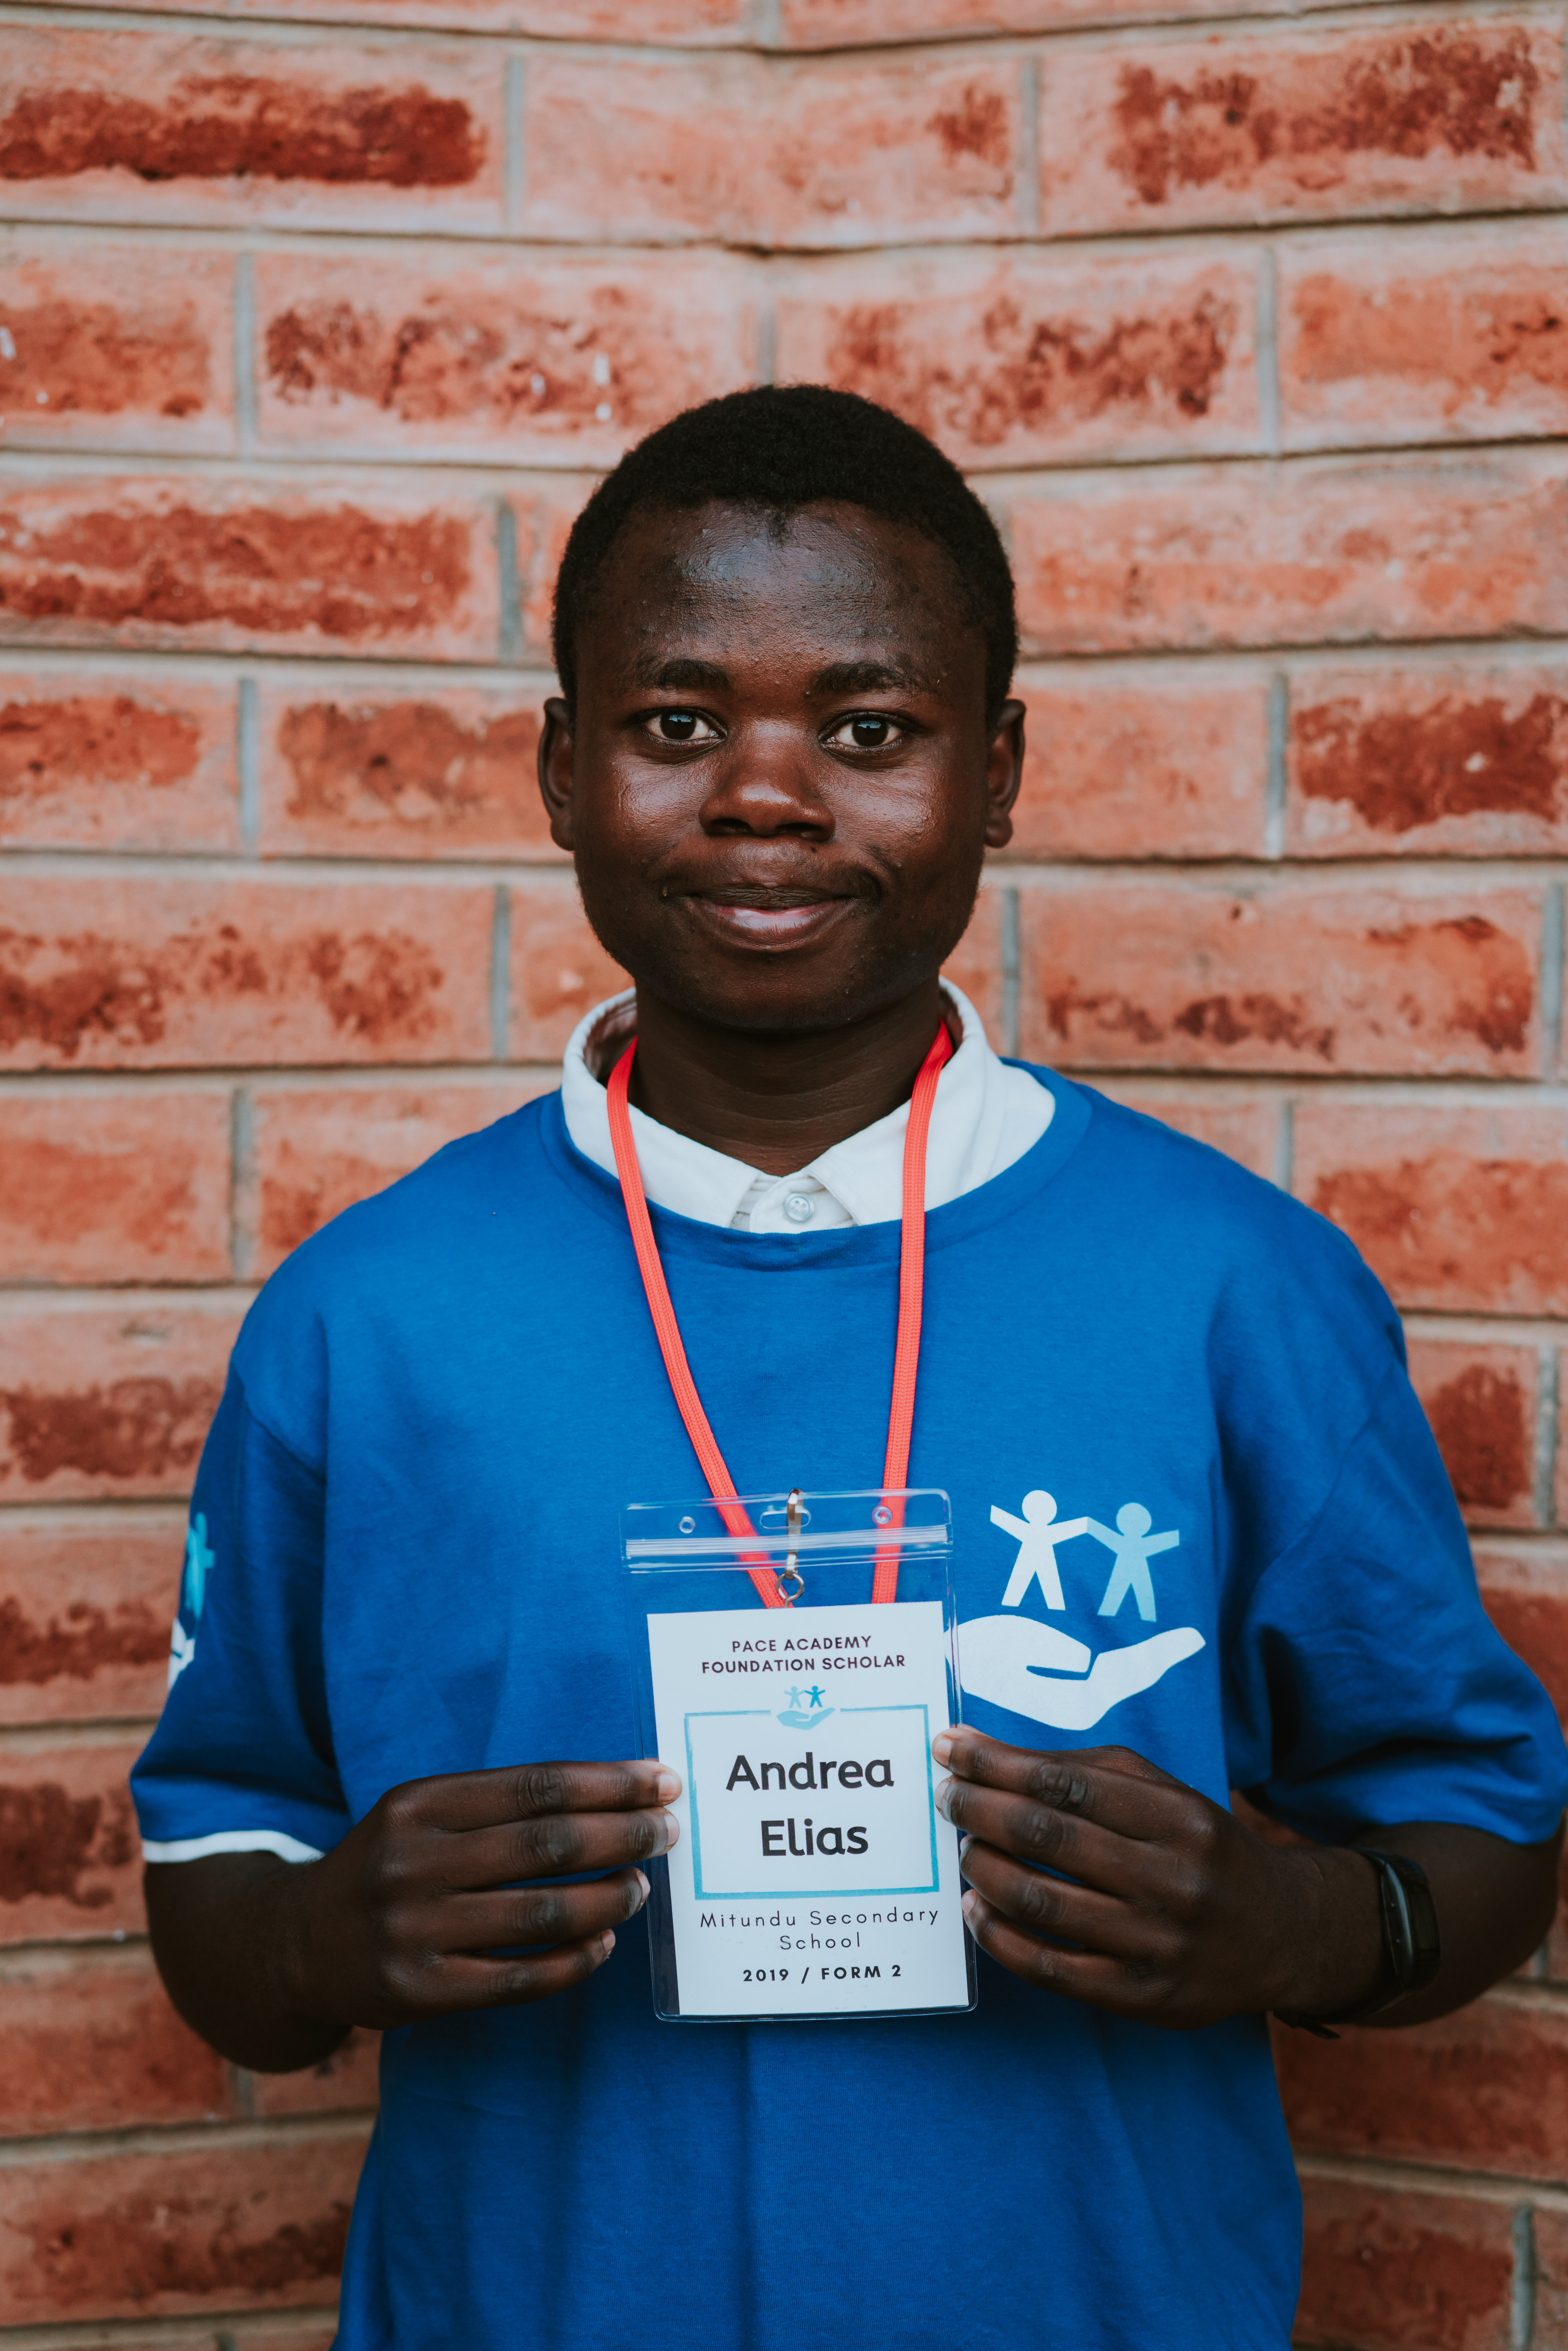 Andrea Elias (Mitundu Secondary School)